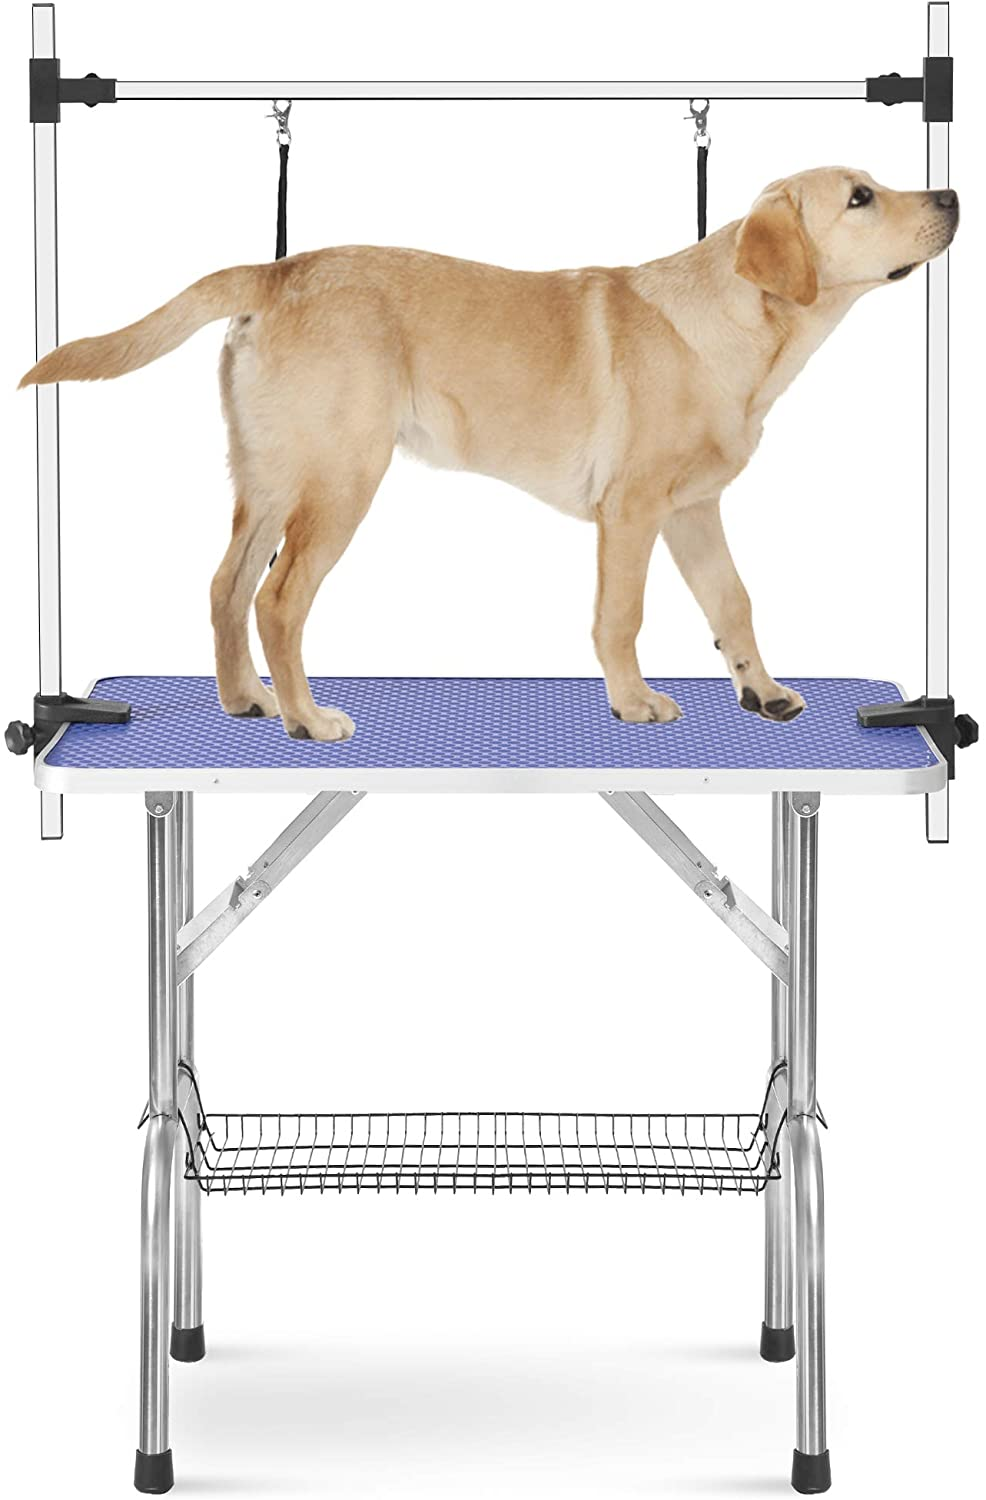 Rhomtree Professional Adjustable Pet Grooming Table Heavy Duty with Arm & Nosse & Mesh Tray for Large Dog Cat Shower Table Bath Station, Maximum Capacity Up to 330 LBS